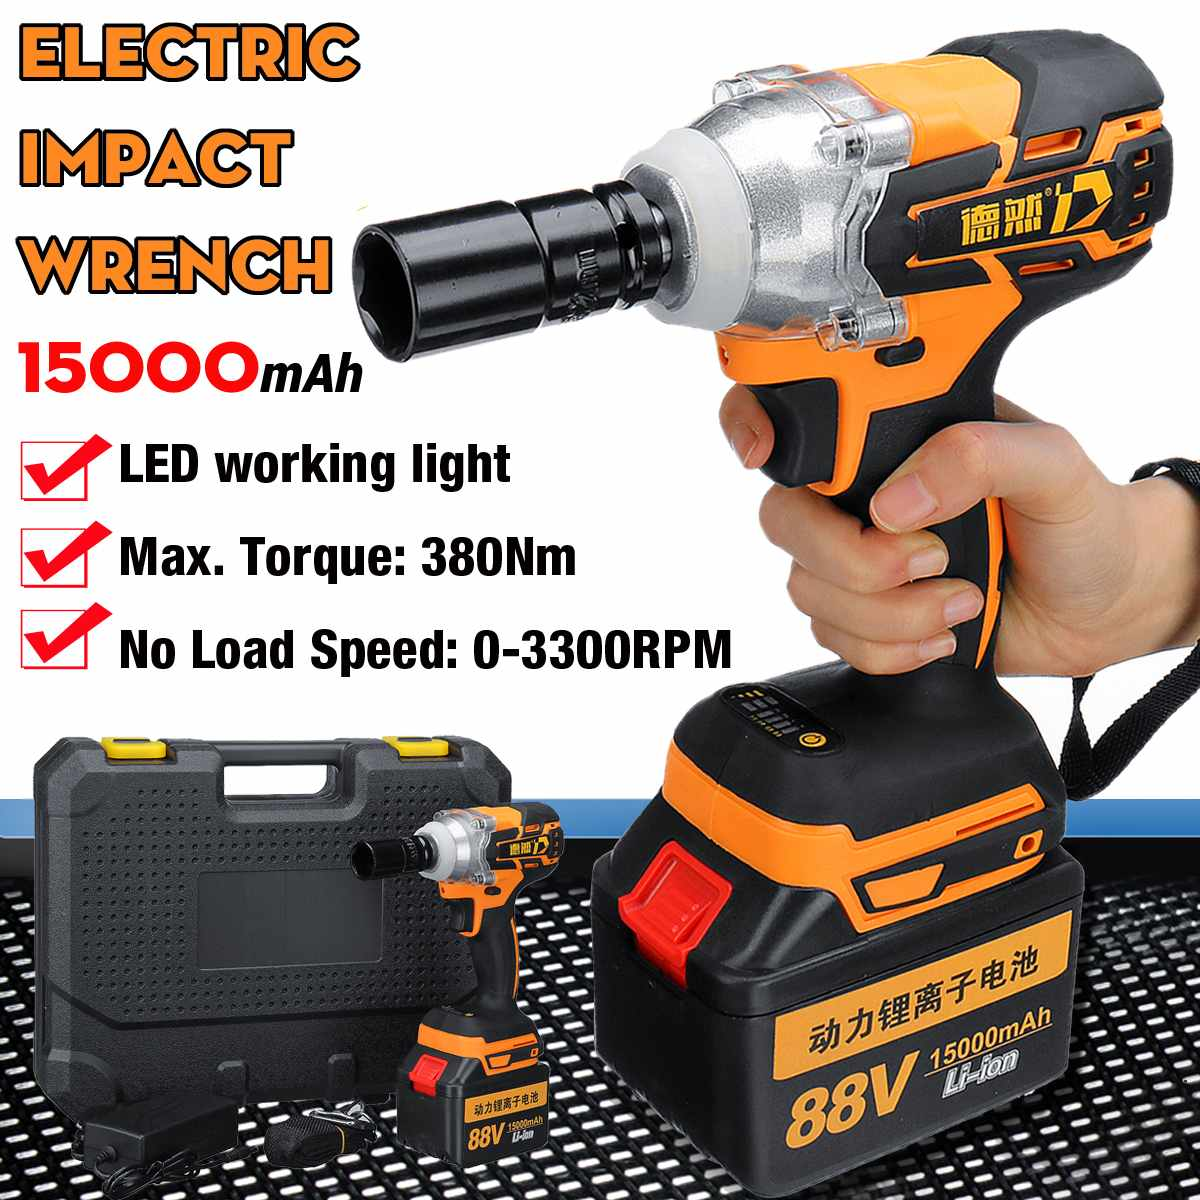 88V 380Nm Cordless Electric Wrench Brushless Impact Socket Wrench 15000mAh Li Battery Hand Drill Installation Power Tools88V 380Nm Cordless Electric Wrench Brushless Impact Socket Wrench 15000mAh Li Battery Hand Drill Installation Power Tools